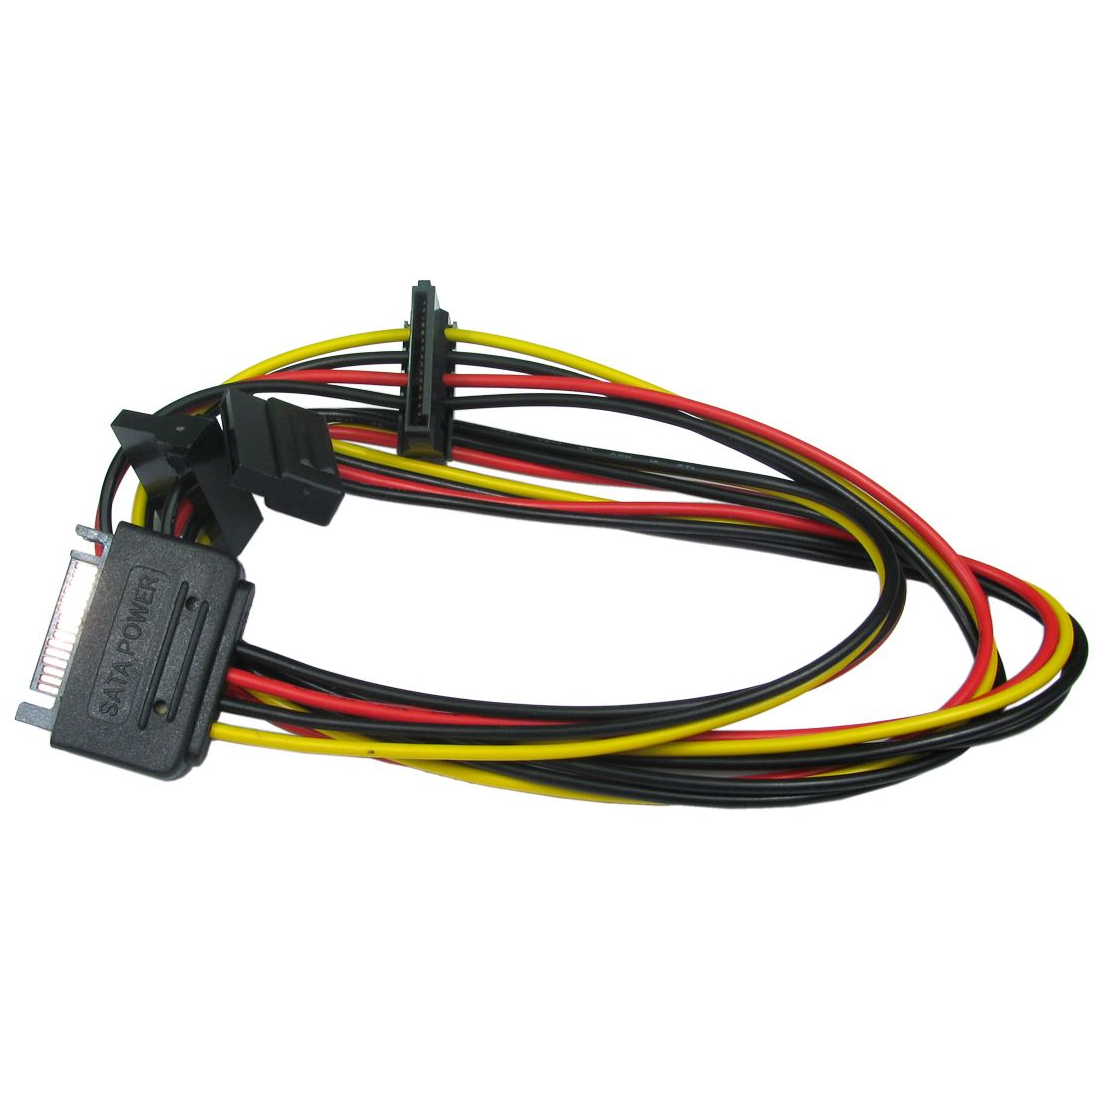 Sata Power Splitter : Sata serial ata power splitter male to way y